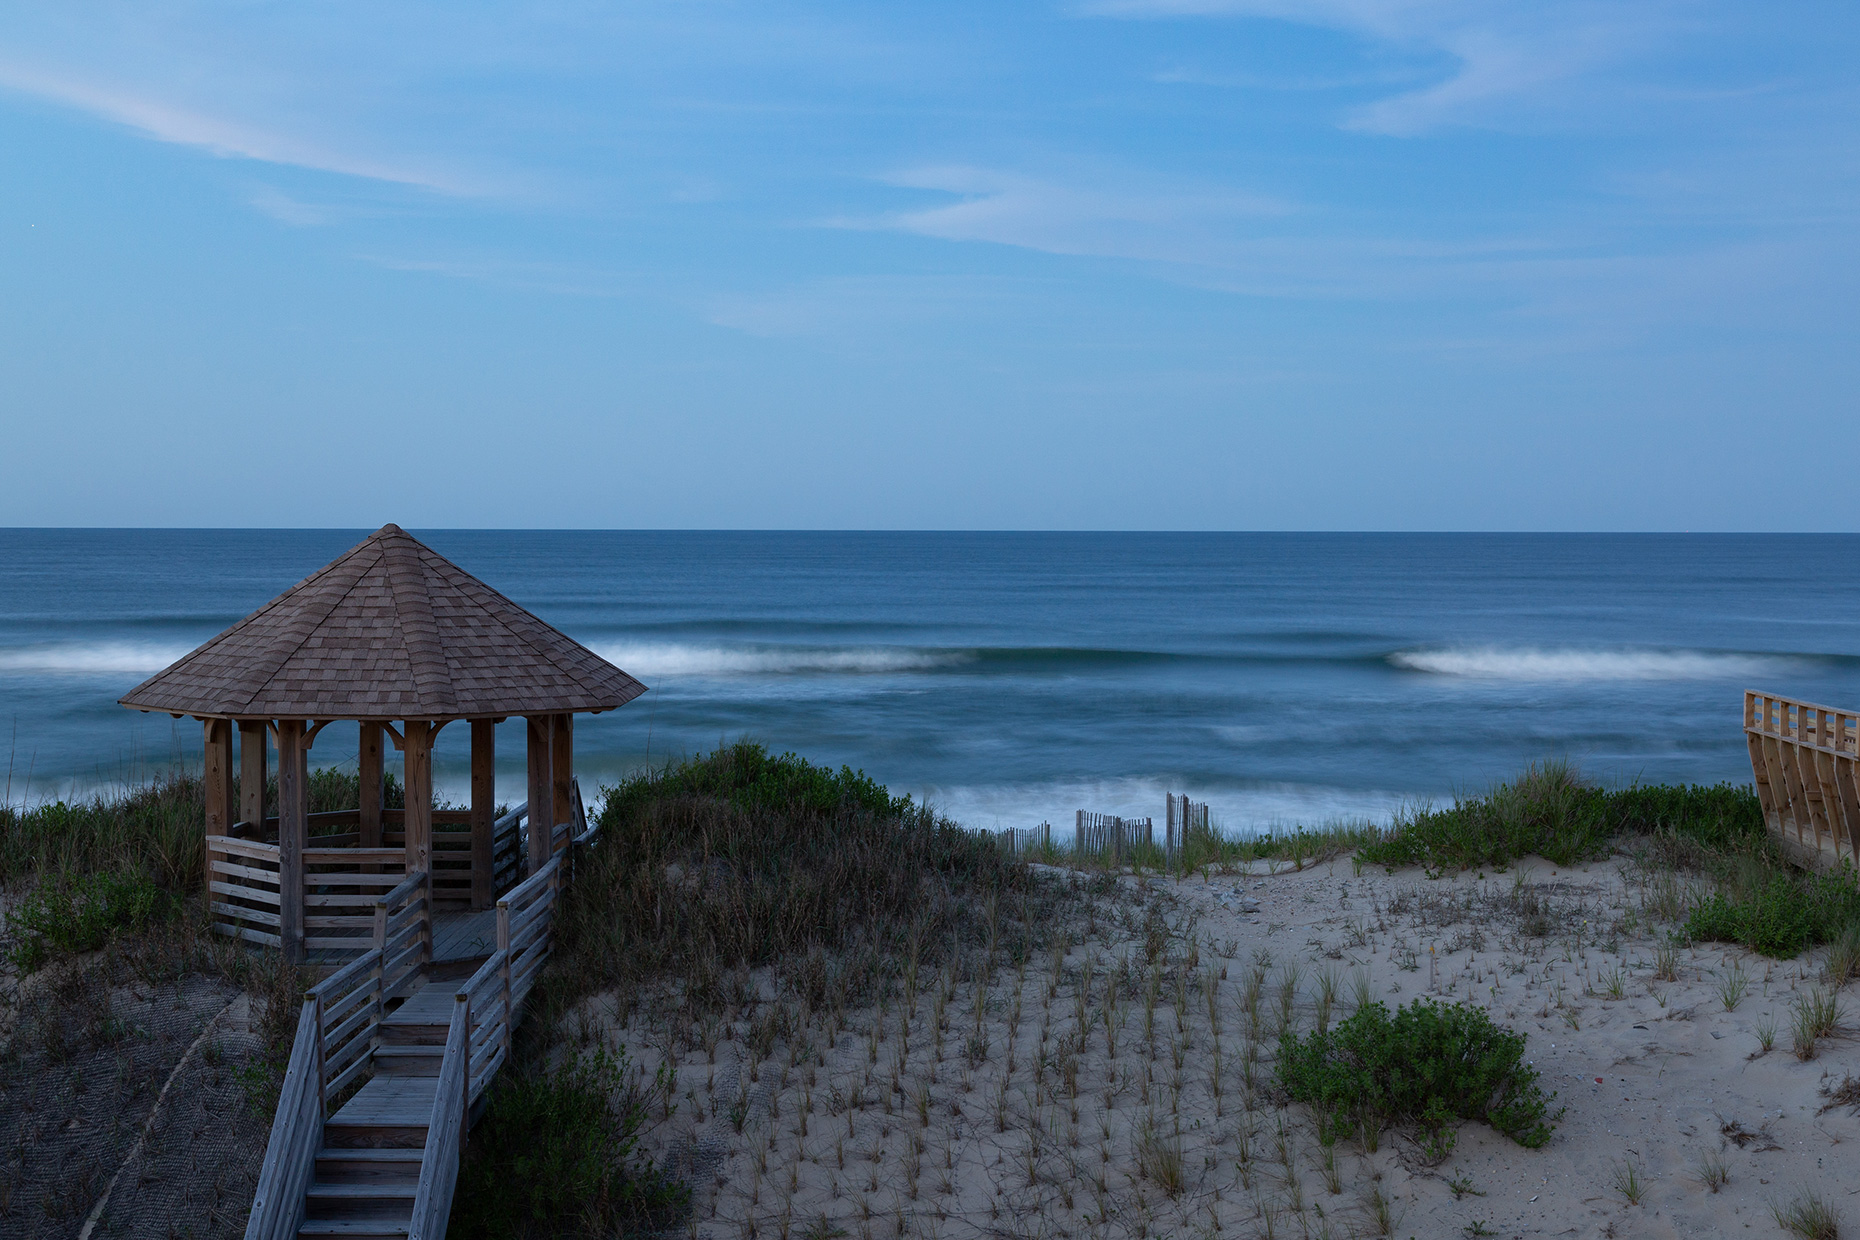 Jeanettes-Pier-Outer-Banks-Nags-Head-North-Carolina-Caryn-B-Davis